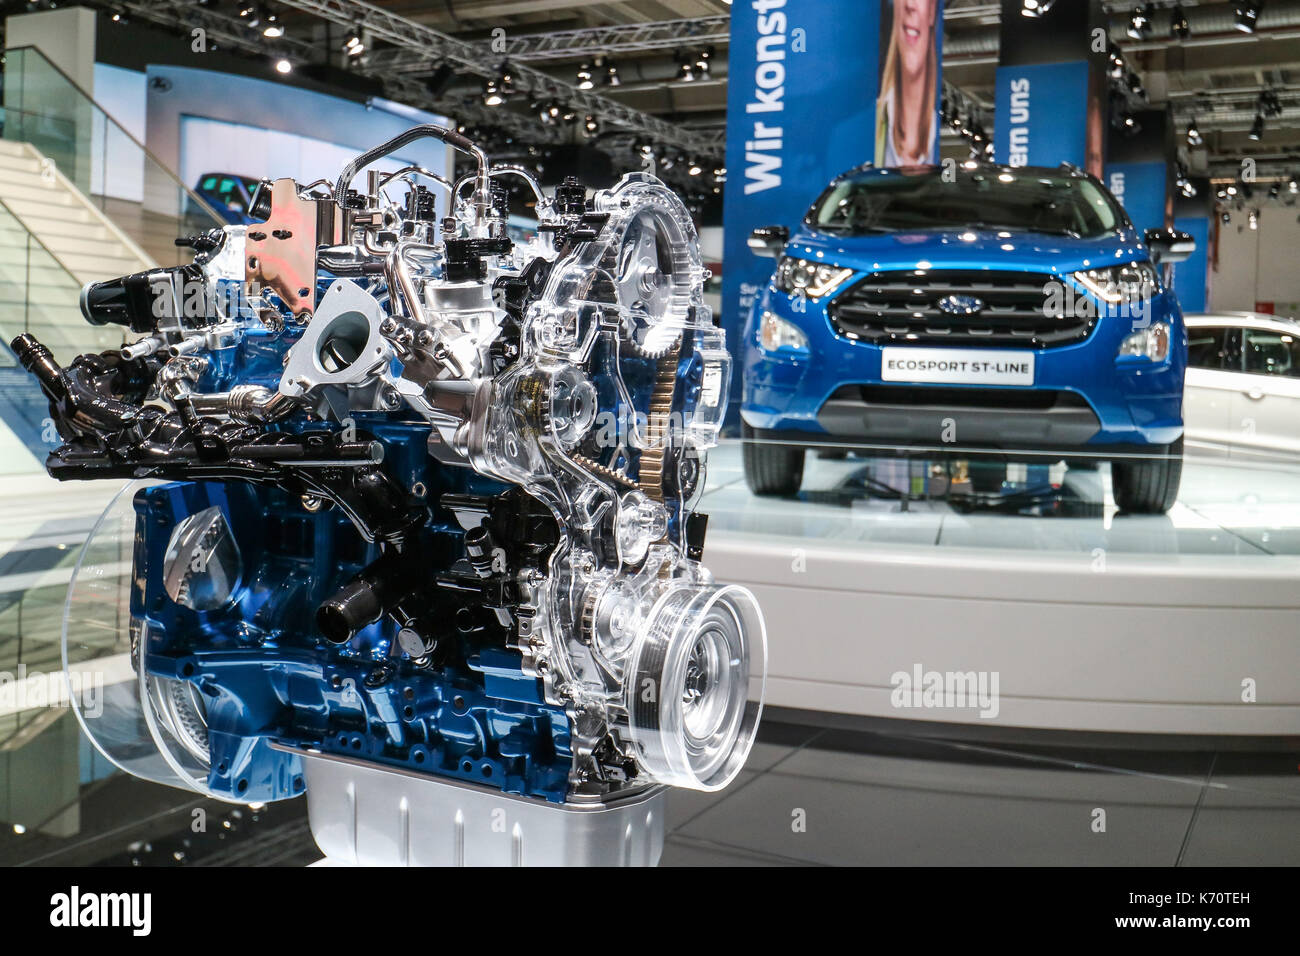 Ford Engine Stockfotos & Ford Engine Bilder - Alamy